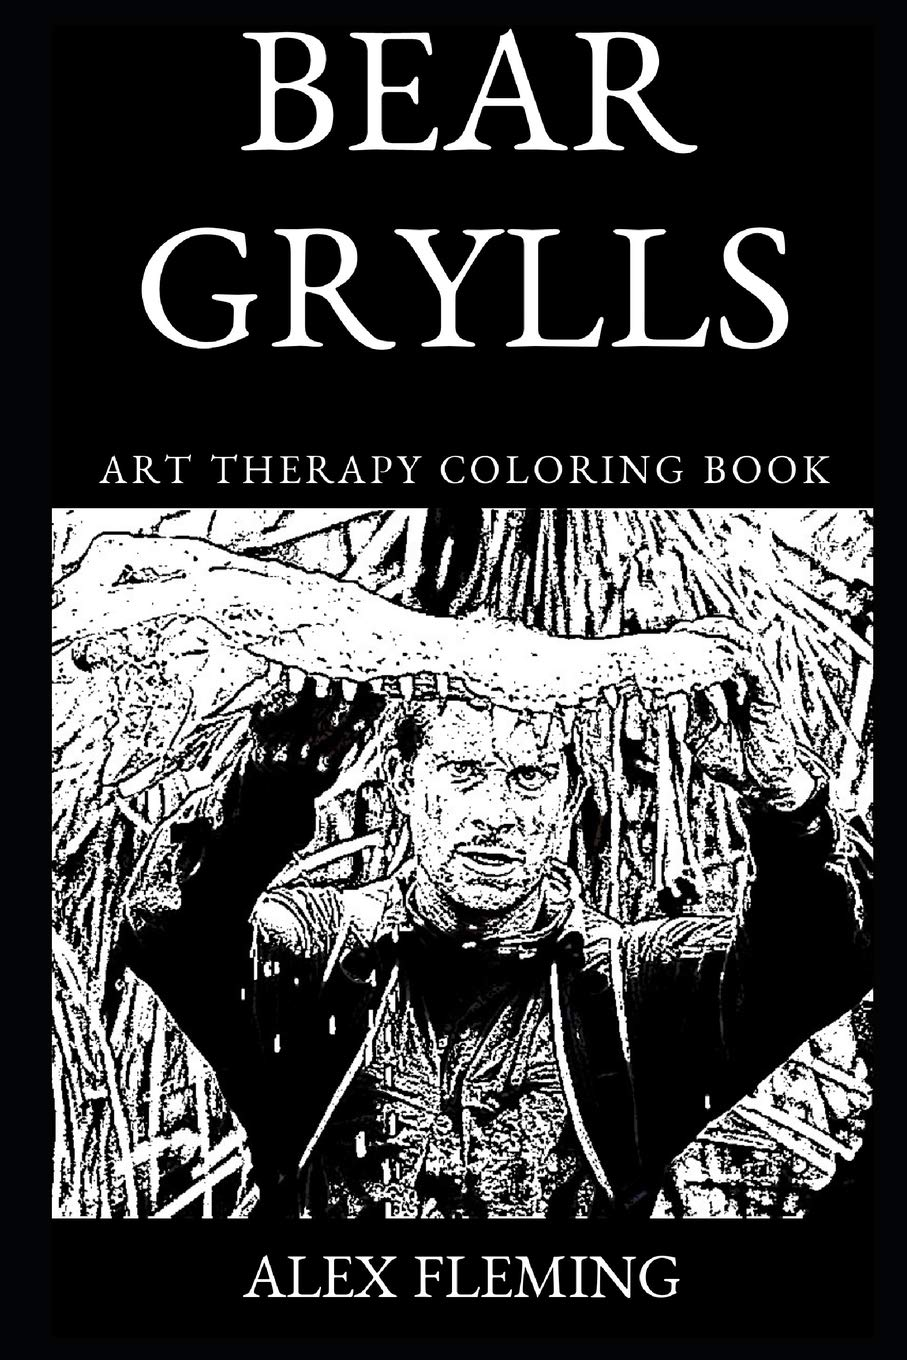 Bear Grylls Art Therapy Coloring Book (Bear Grylls Art Therapy